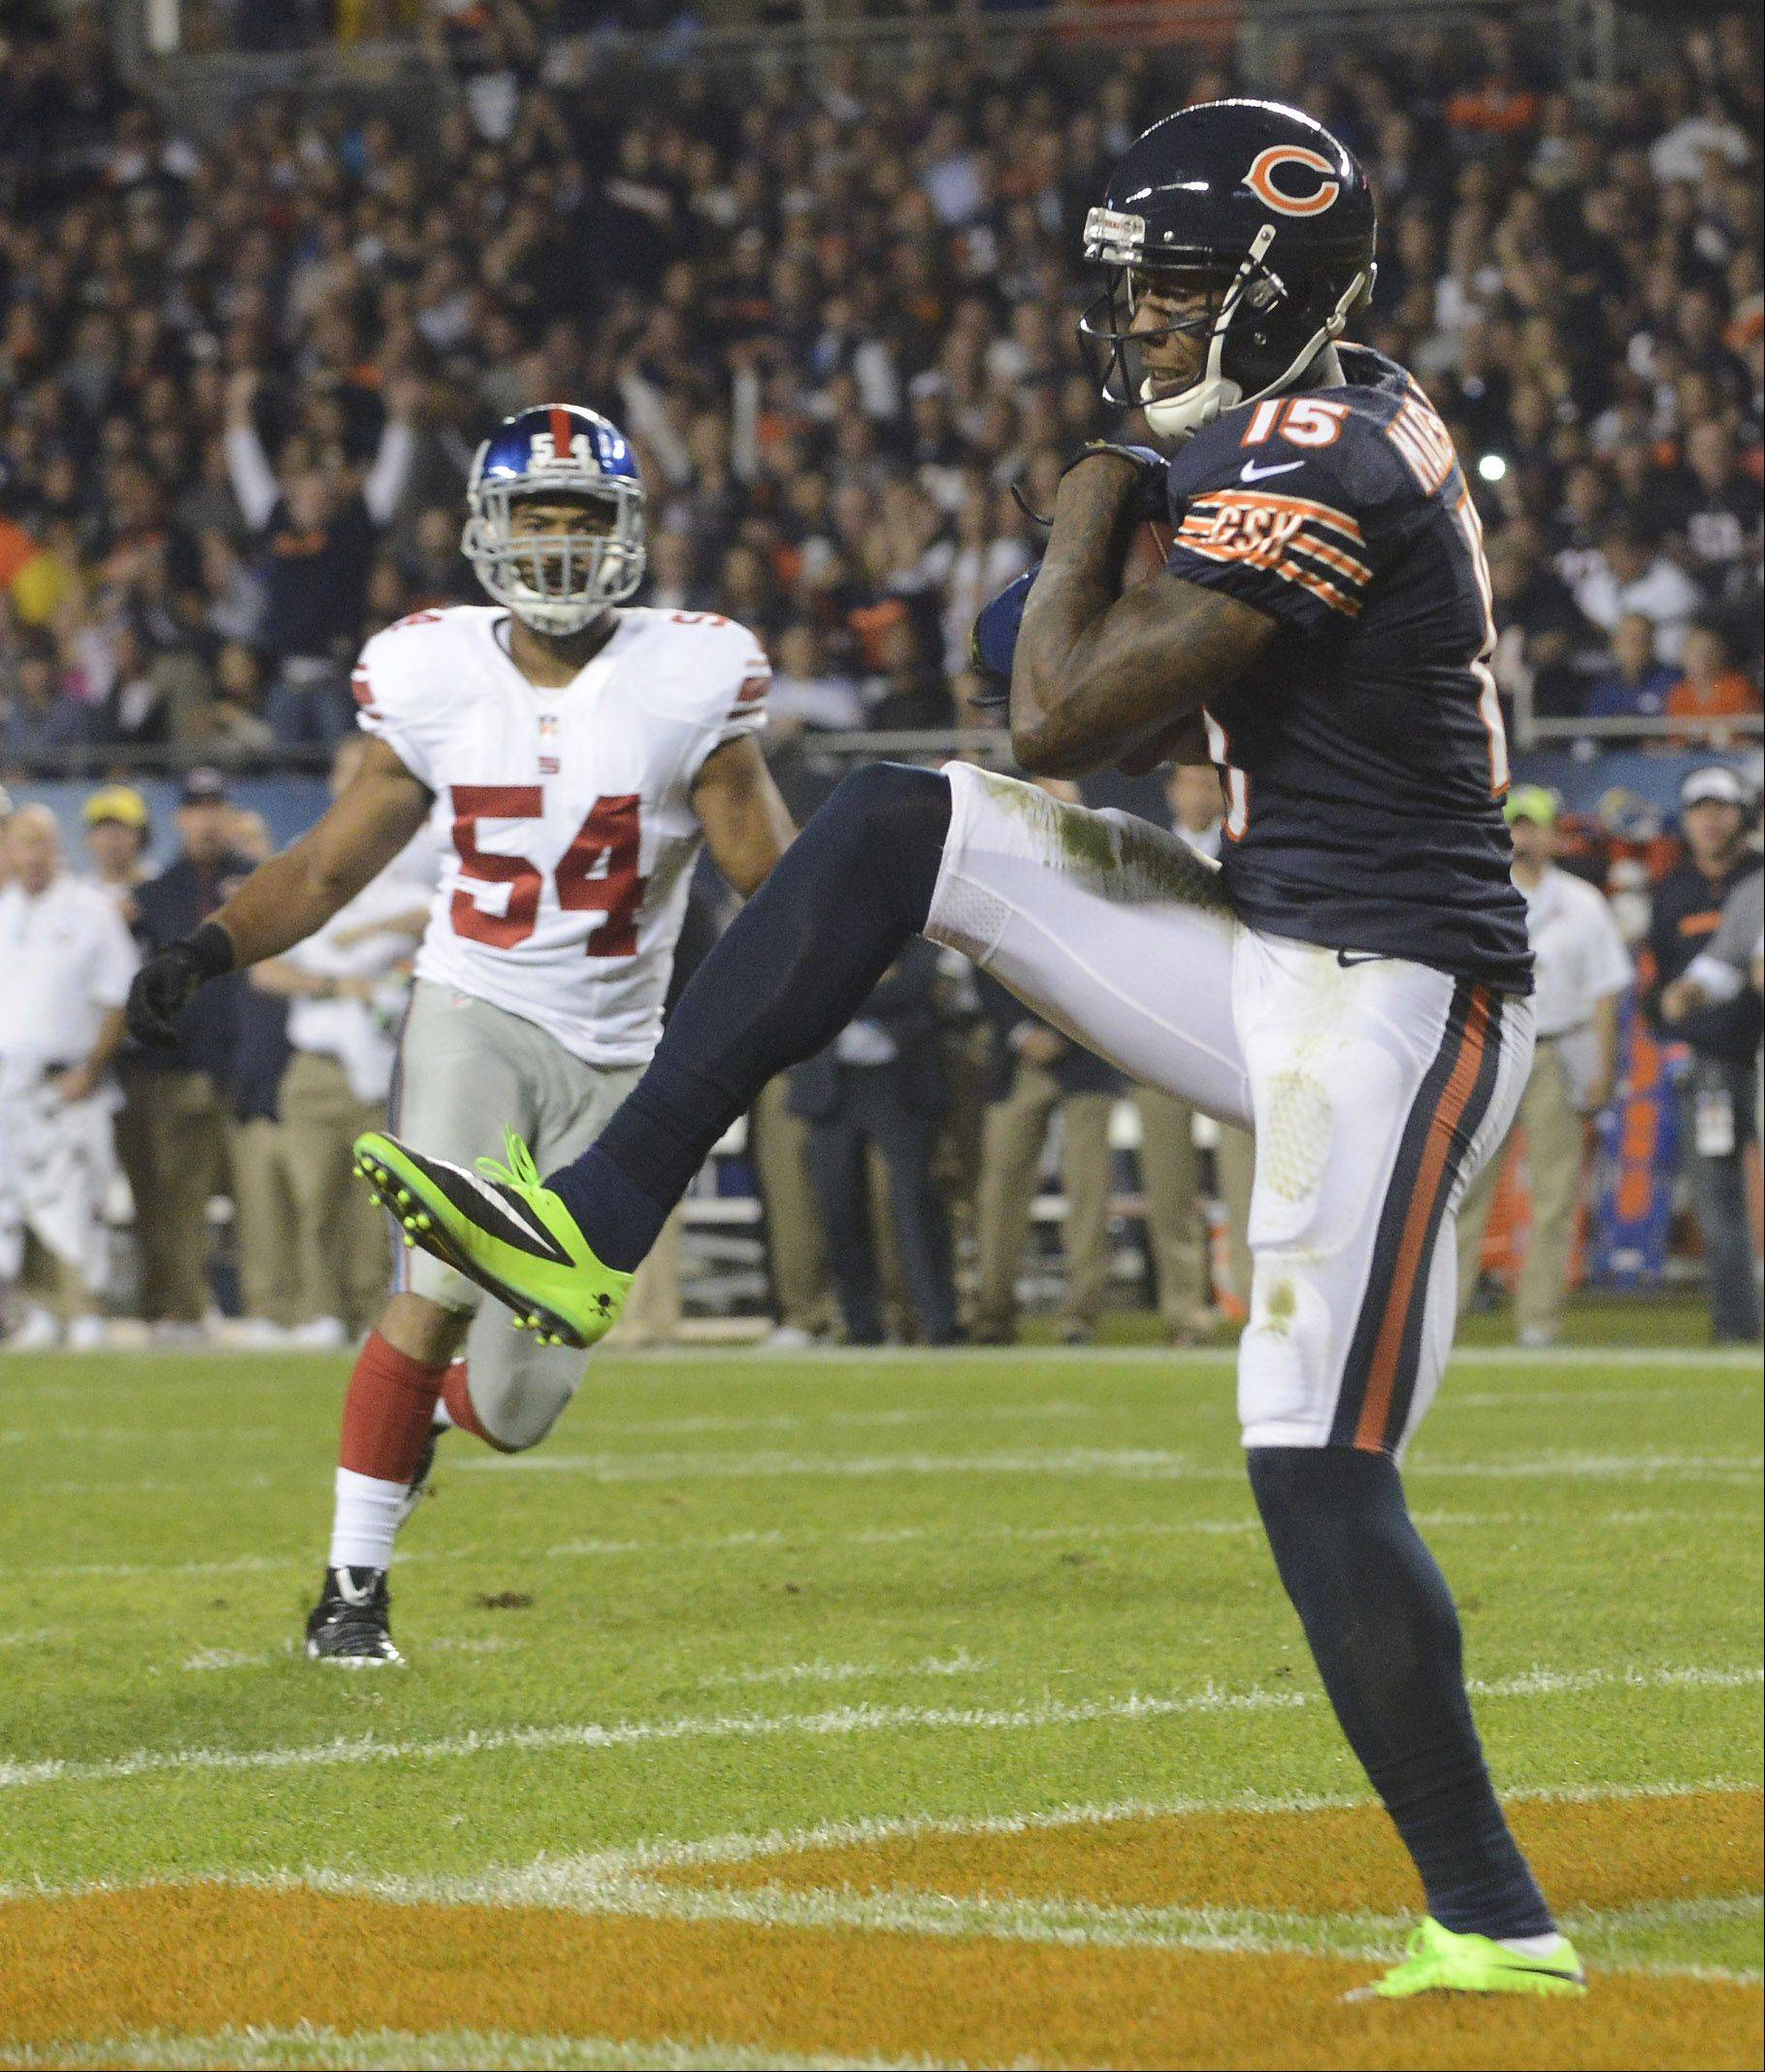 Chicago Bears wide receiver Brandon Marshall makes a touchdown catch during the second quarter.